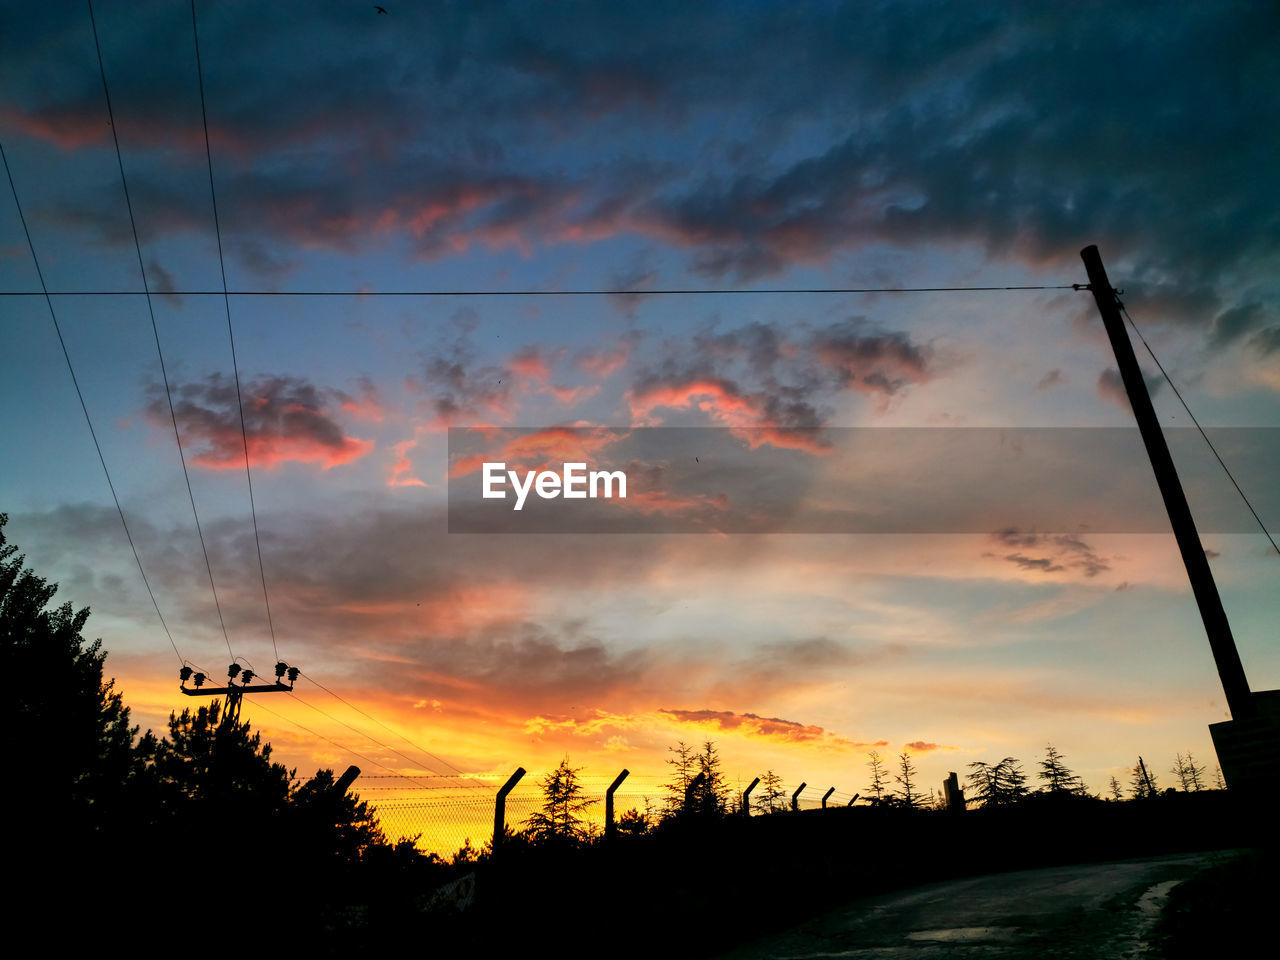 sky, cloud - sky, sunset, beauty in nature, silhouette, orange color, tranquility, tranquil scene, scenics - nature, cable, plant, tree, nature, no people, idyllic, electricity, power line, dramatic sky, technology, low angle view, outdoors, power supply, telephone line